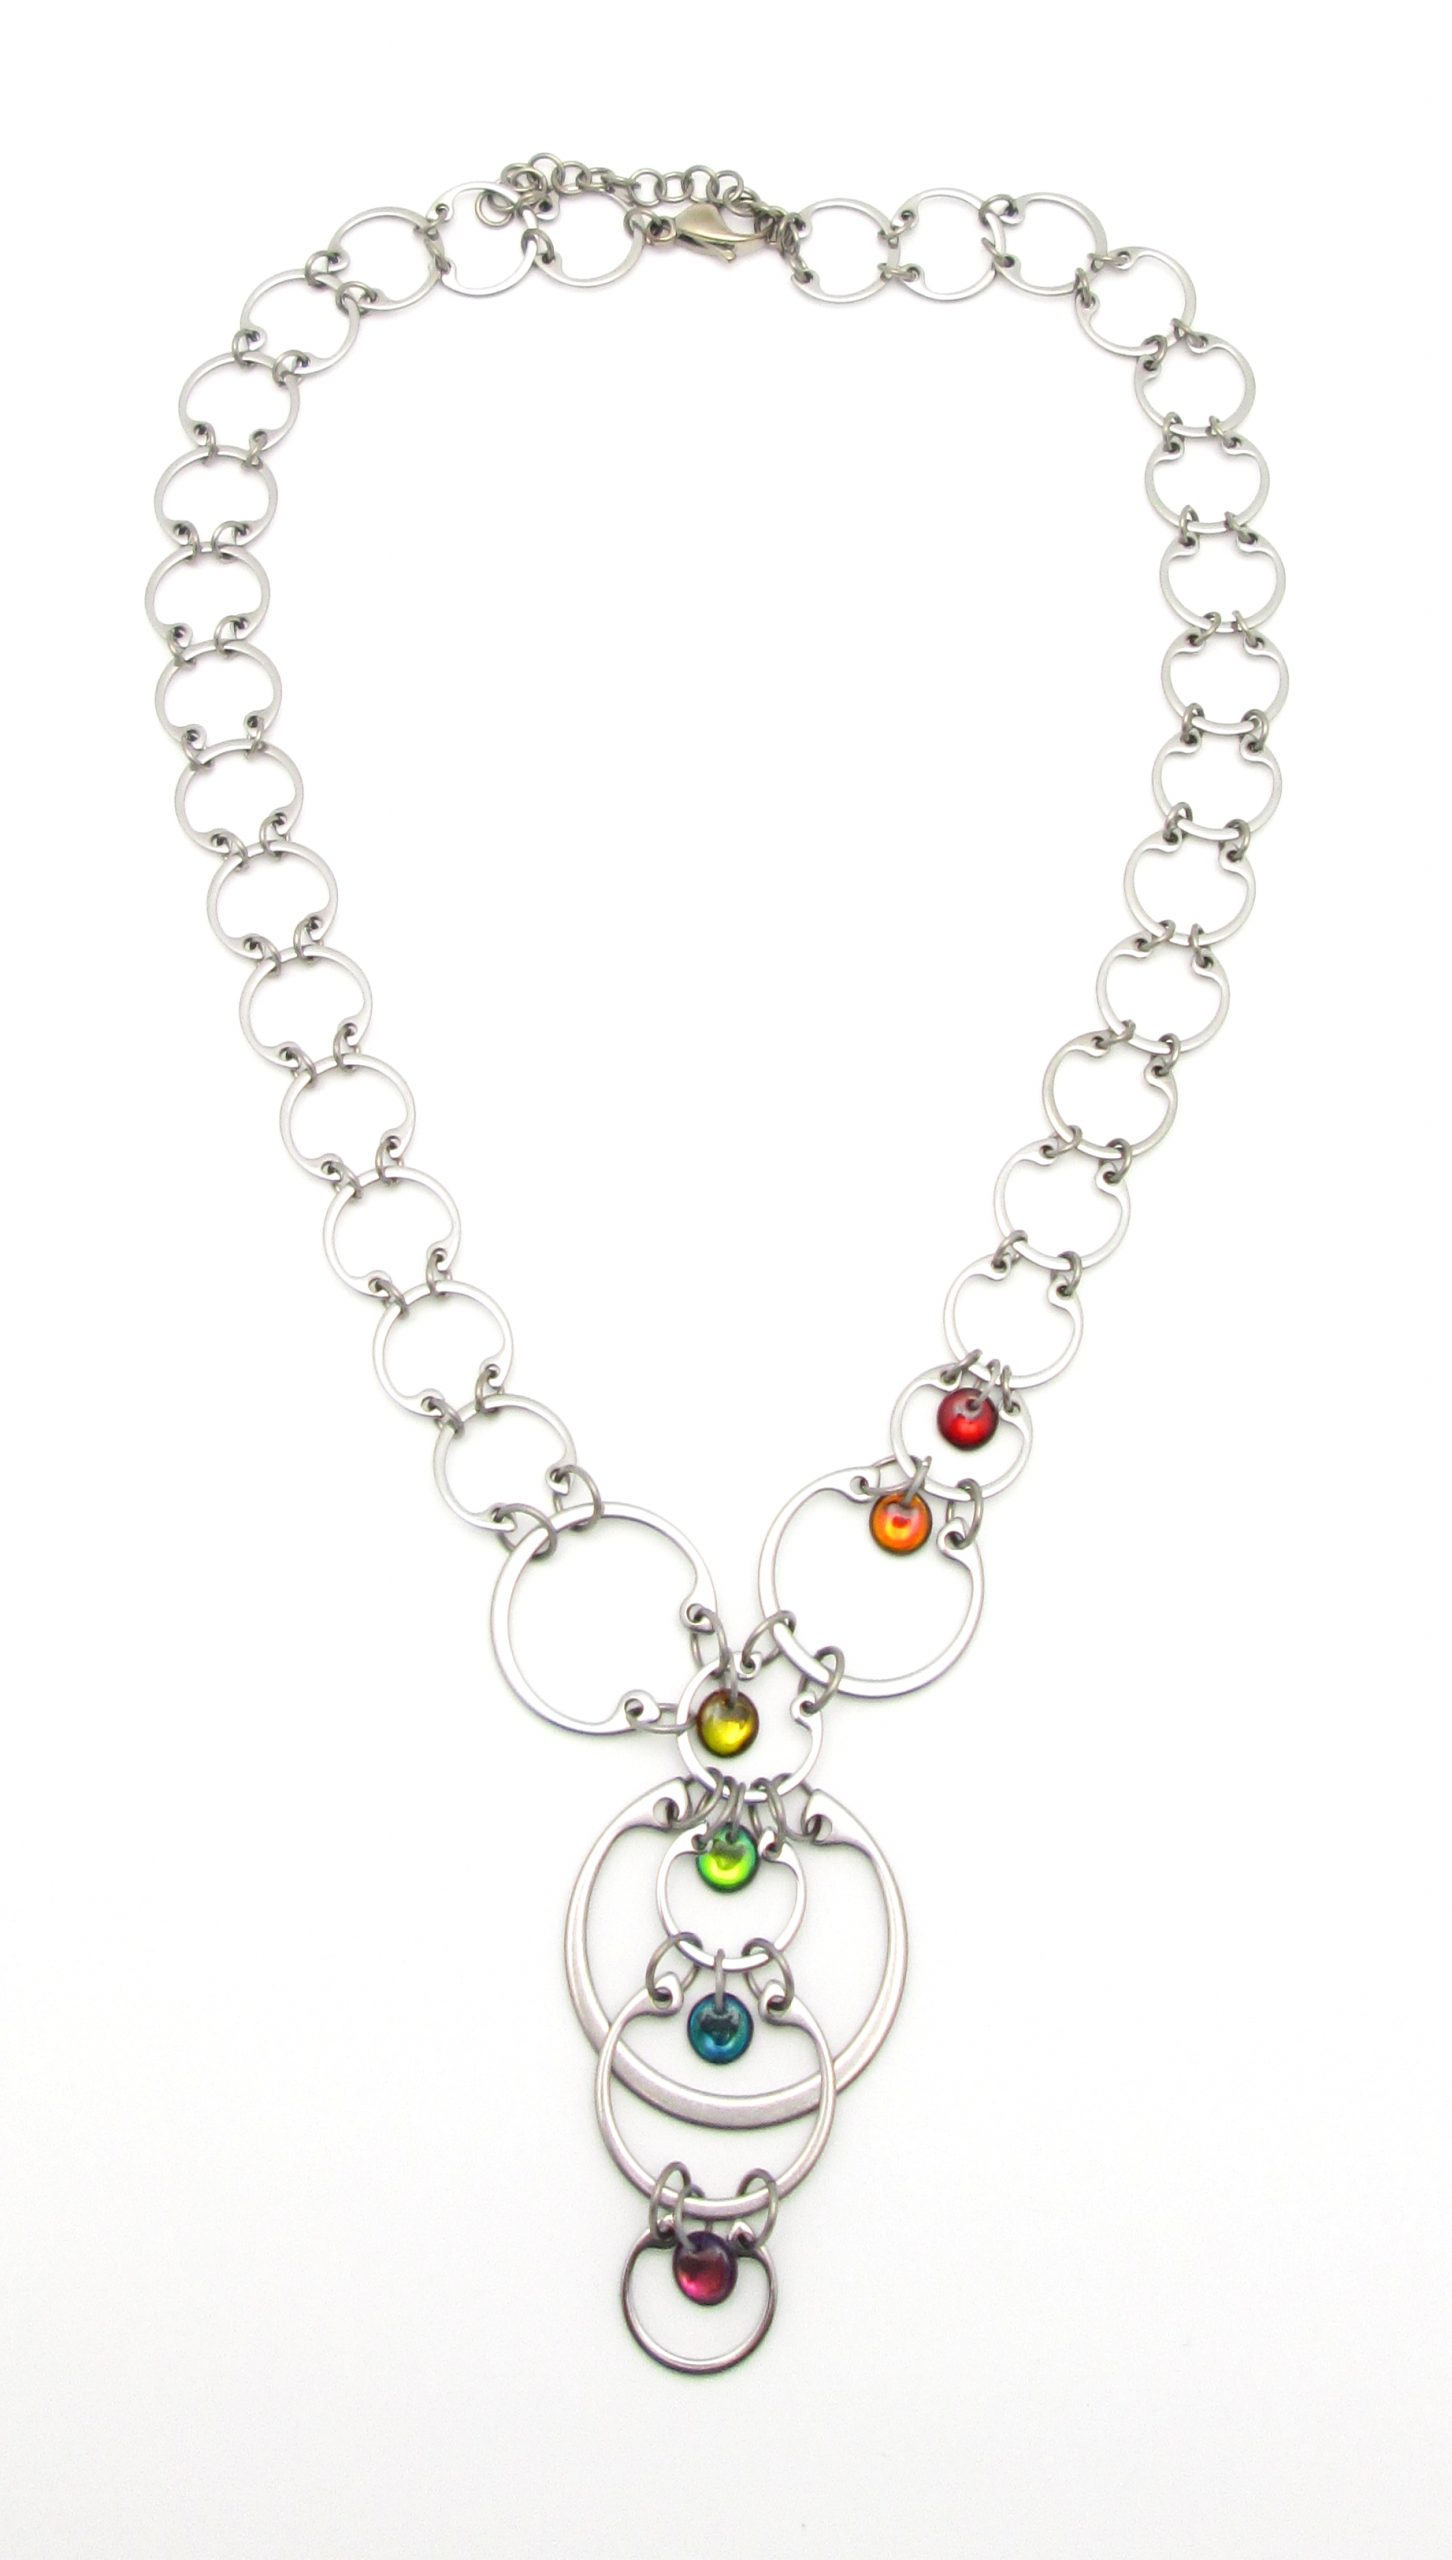 Wraptillion's Cascading Rainbow Circles Necklace, from the Industrial Glass Rainbows modern jewelry collection